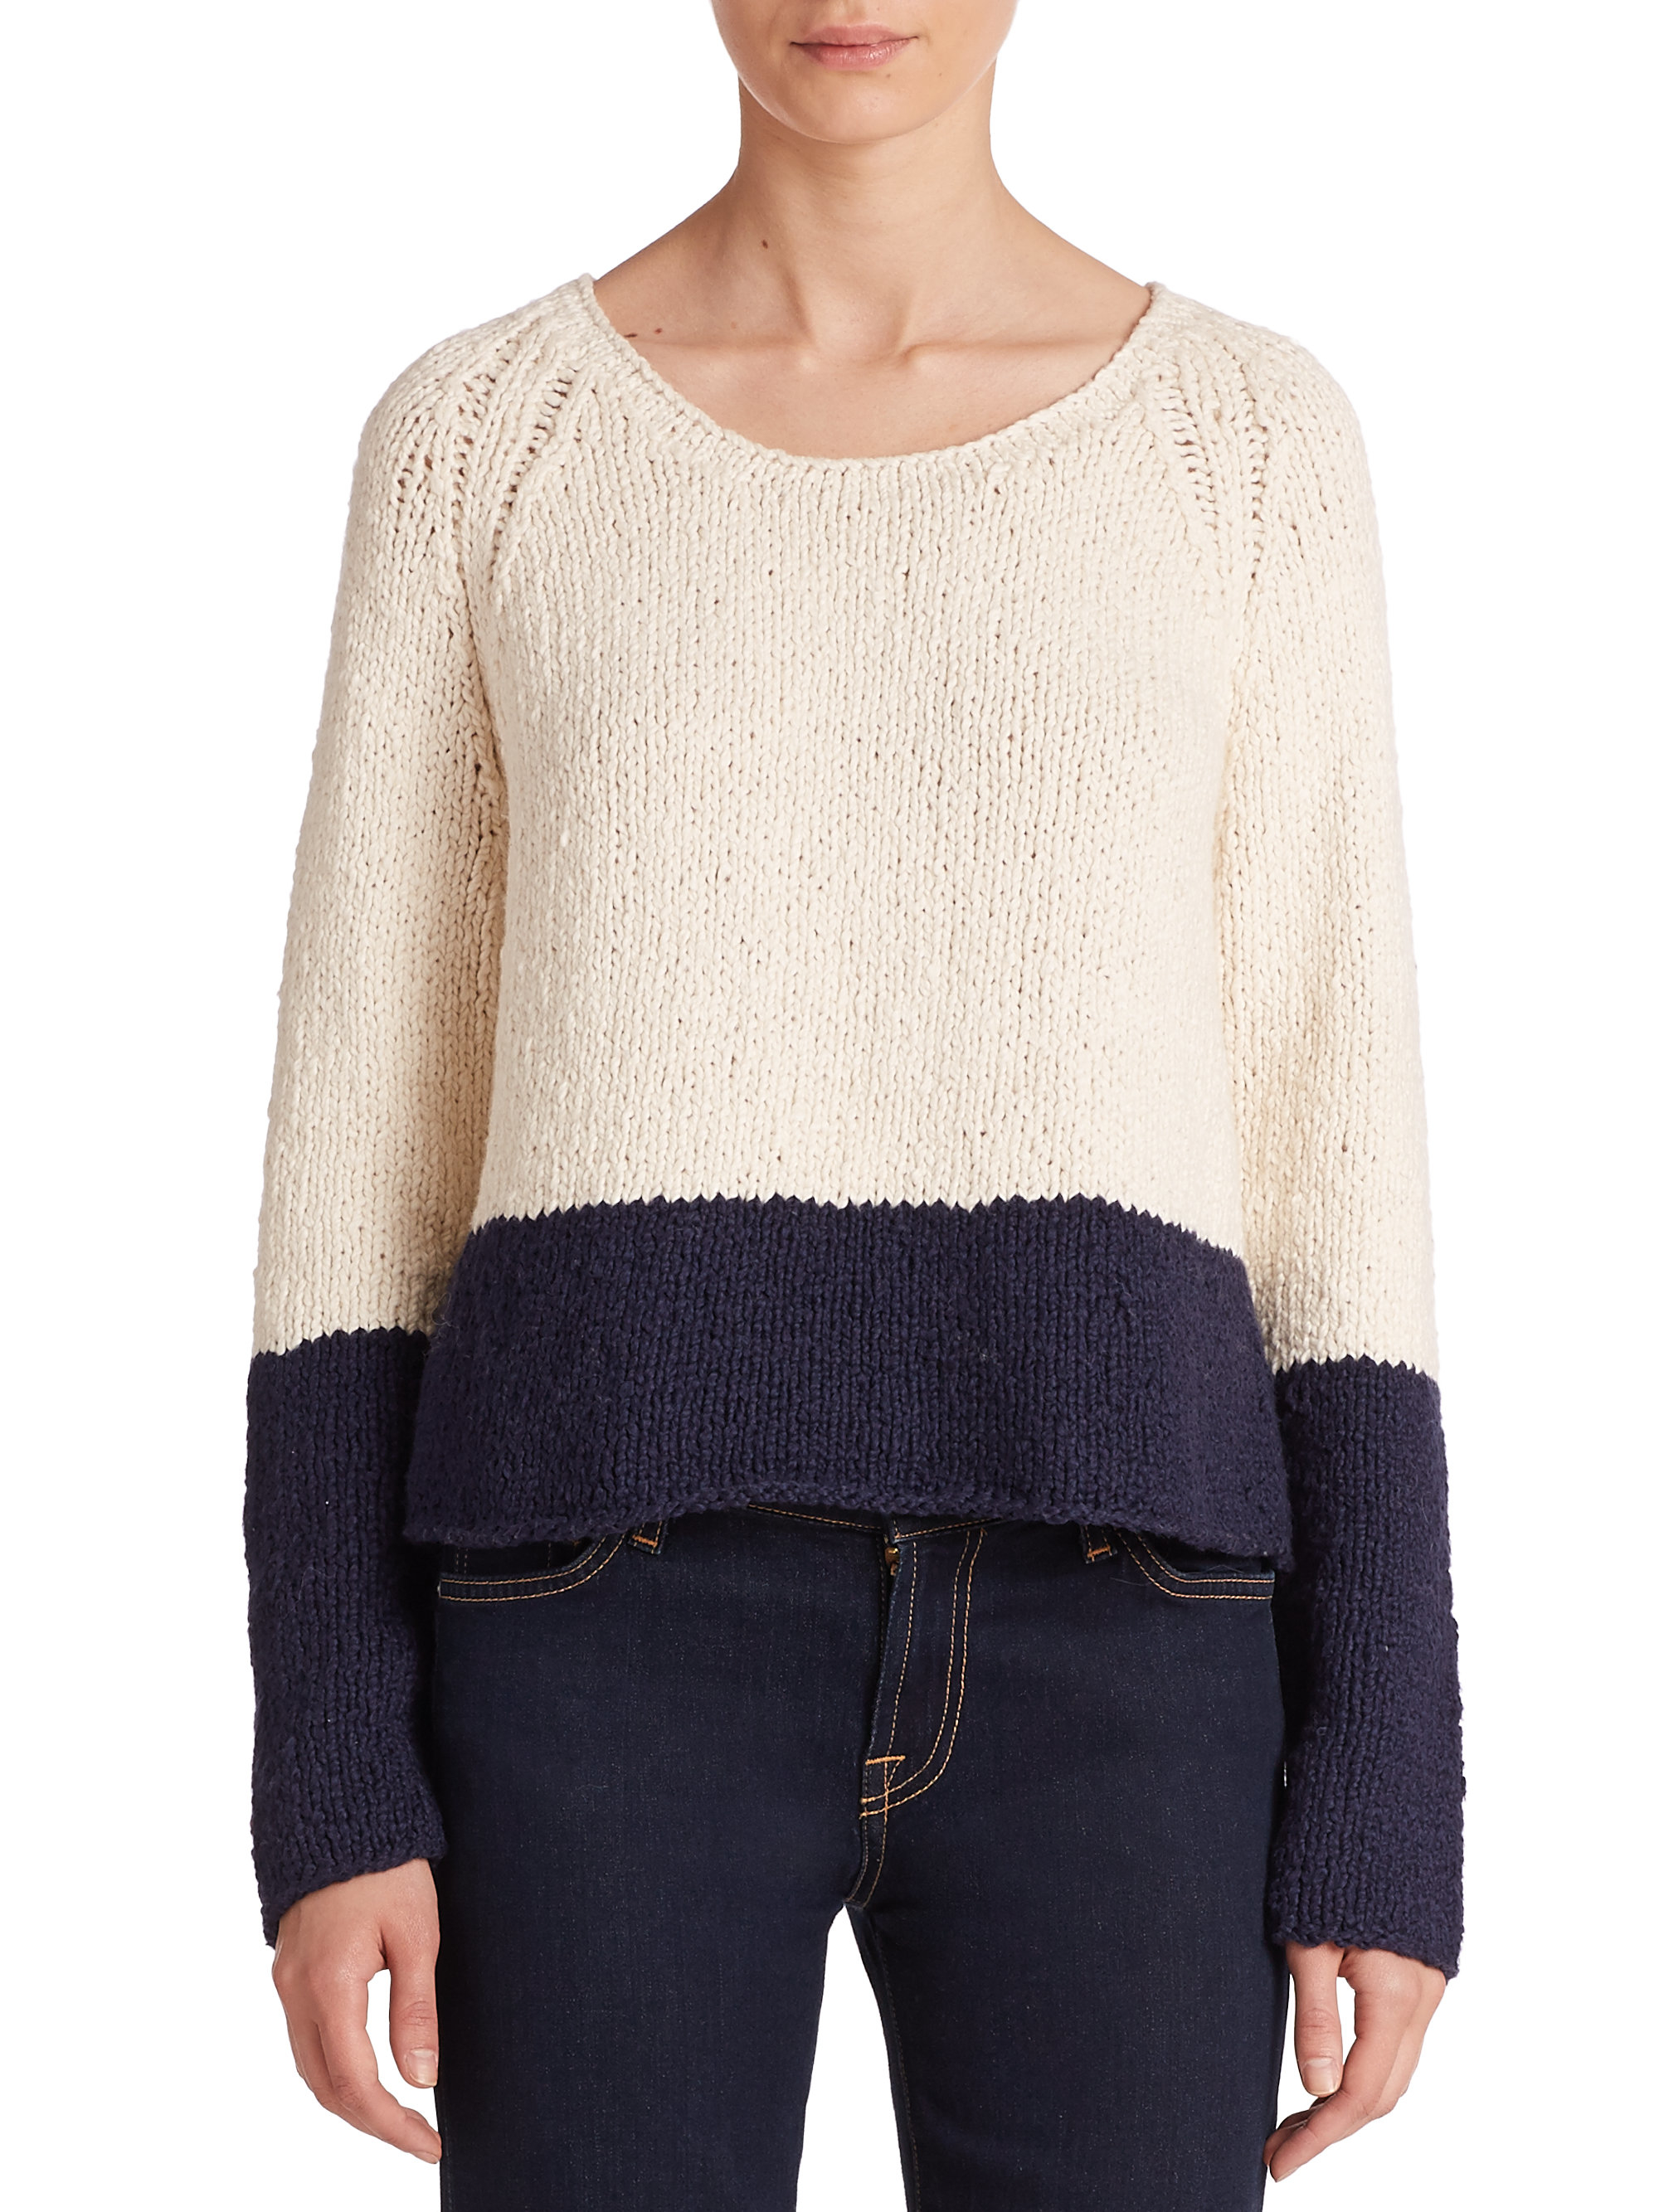 Apiece apart Colorblock Cropped Cotton Sweater in White | Lyst